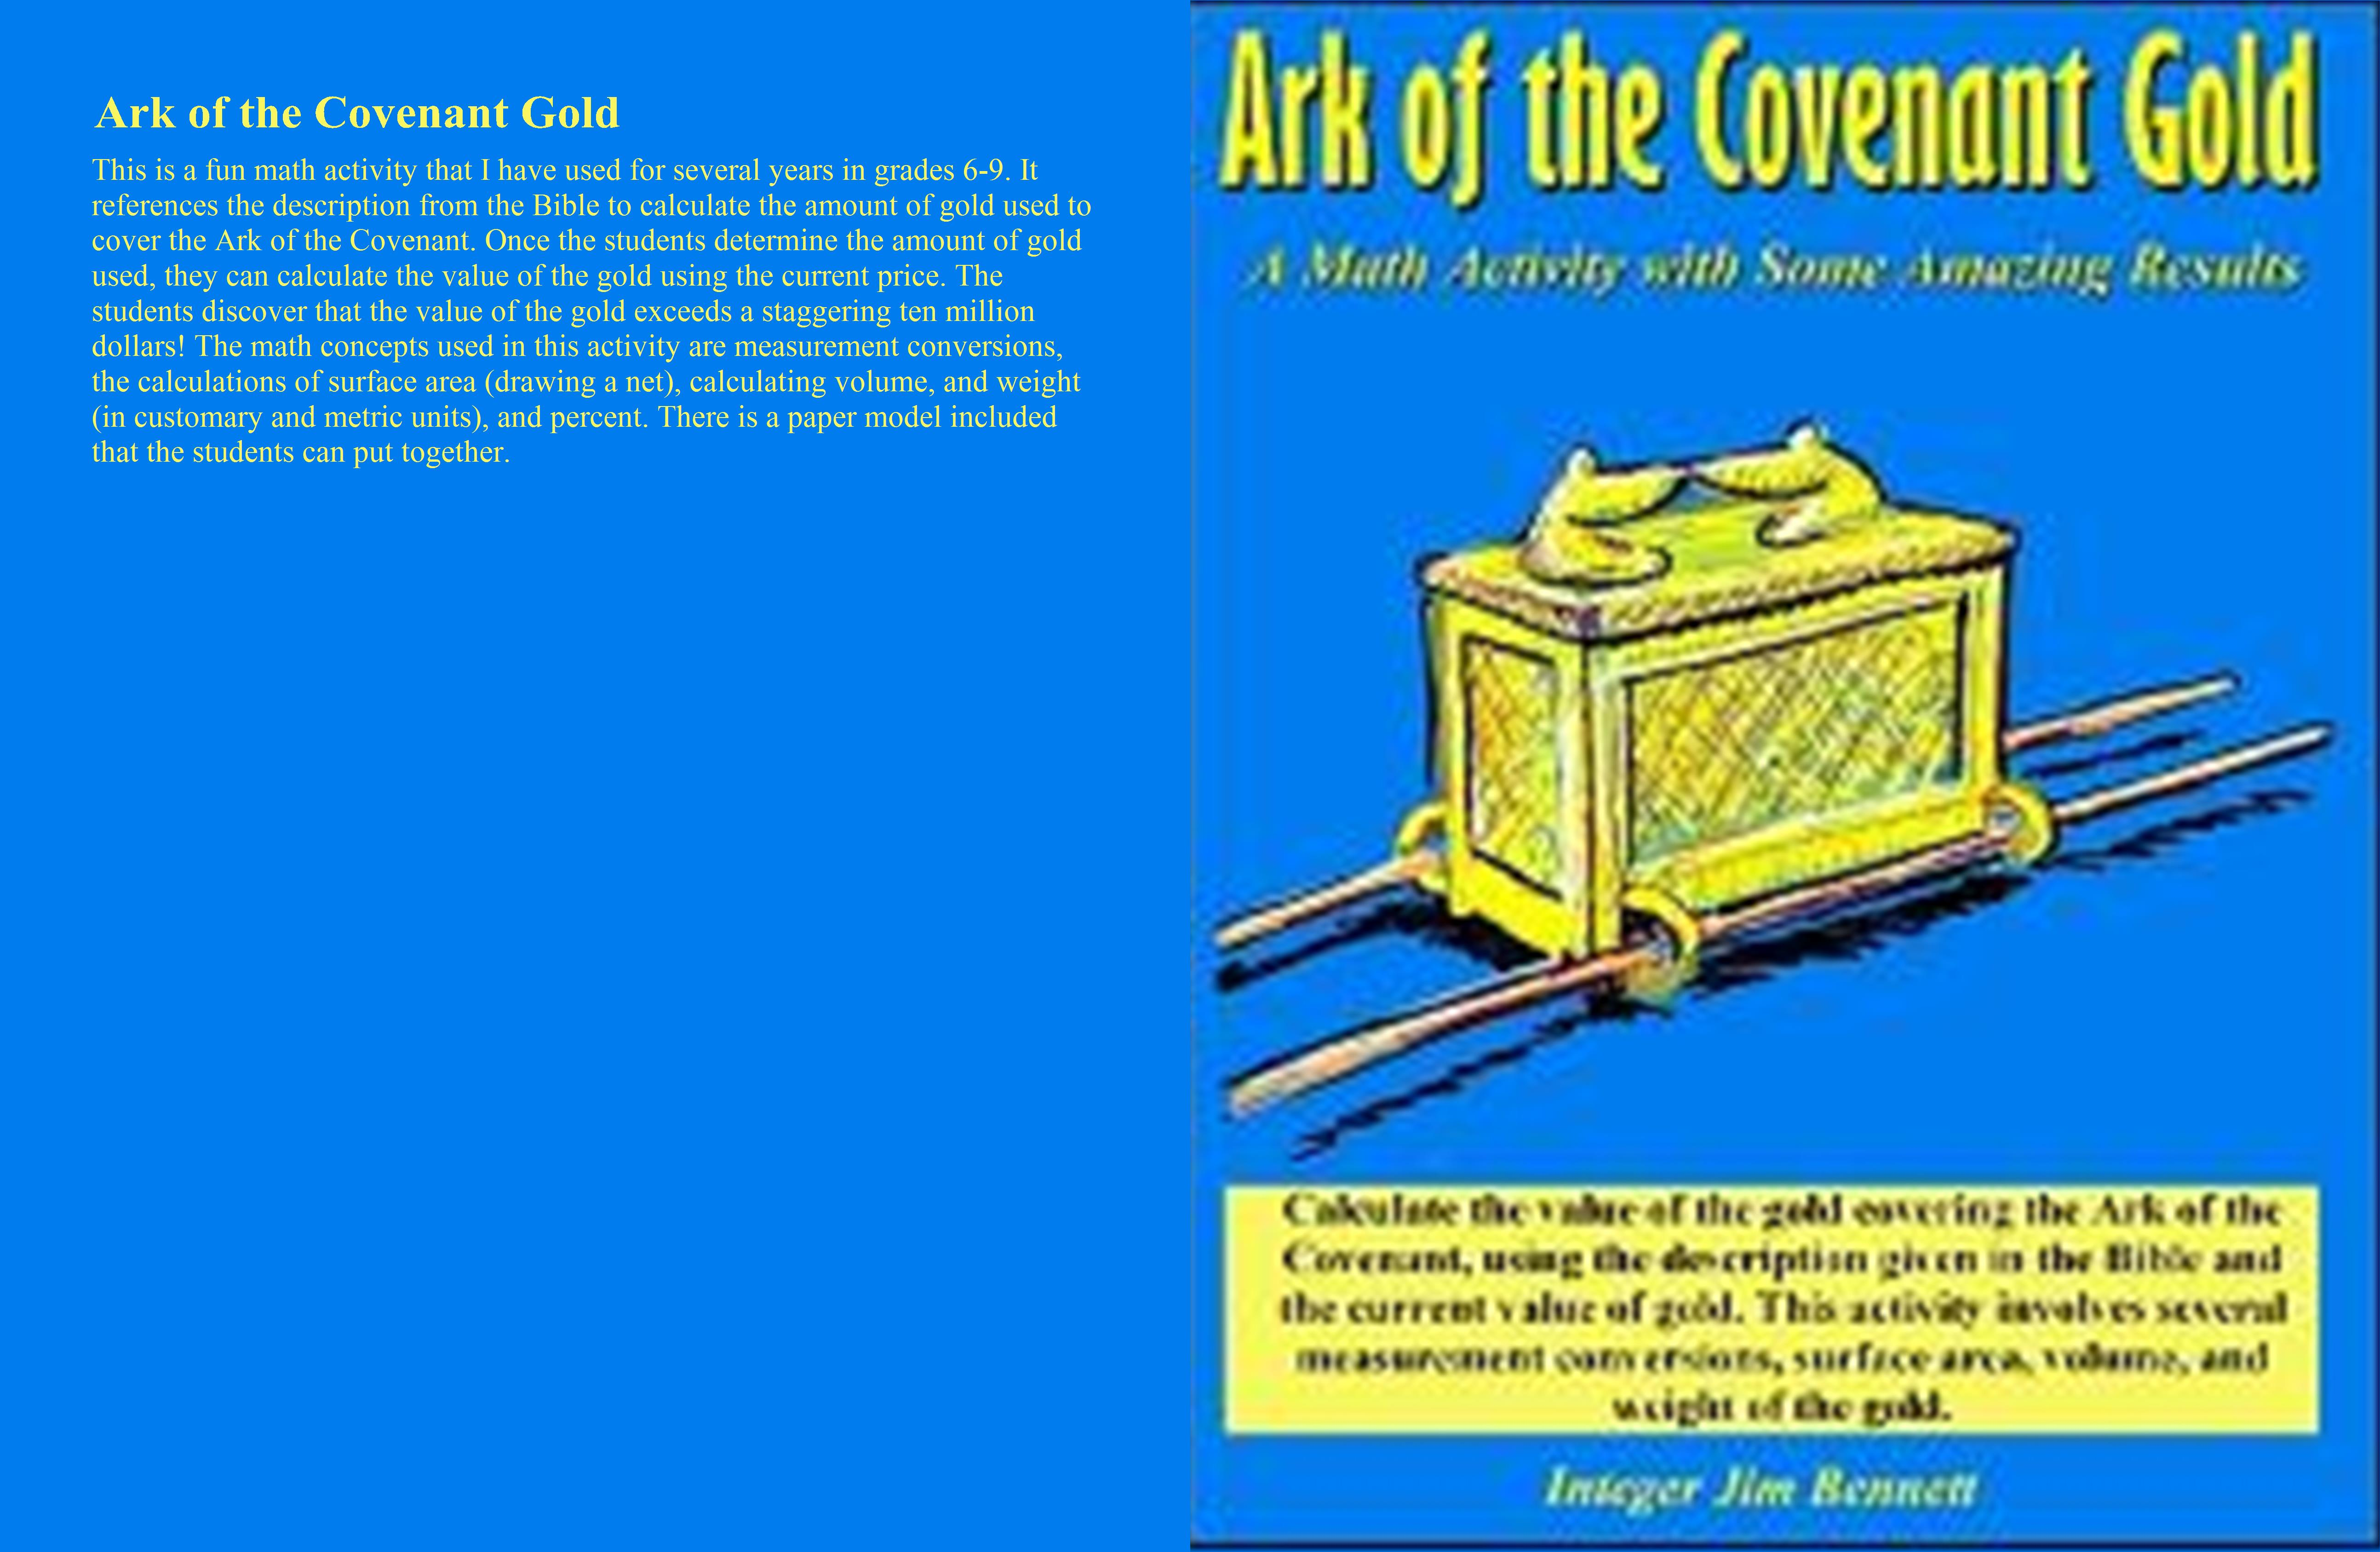 Ark of the Covenant Gold cover image